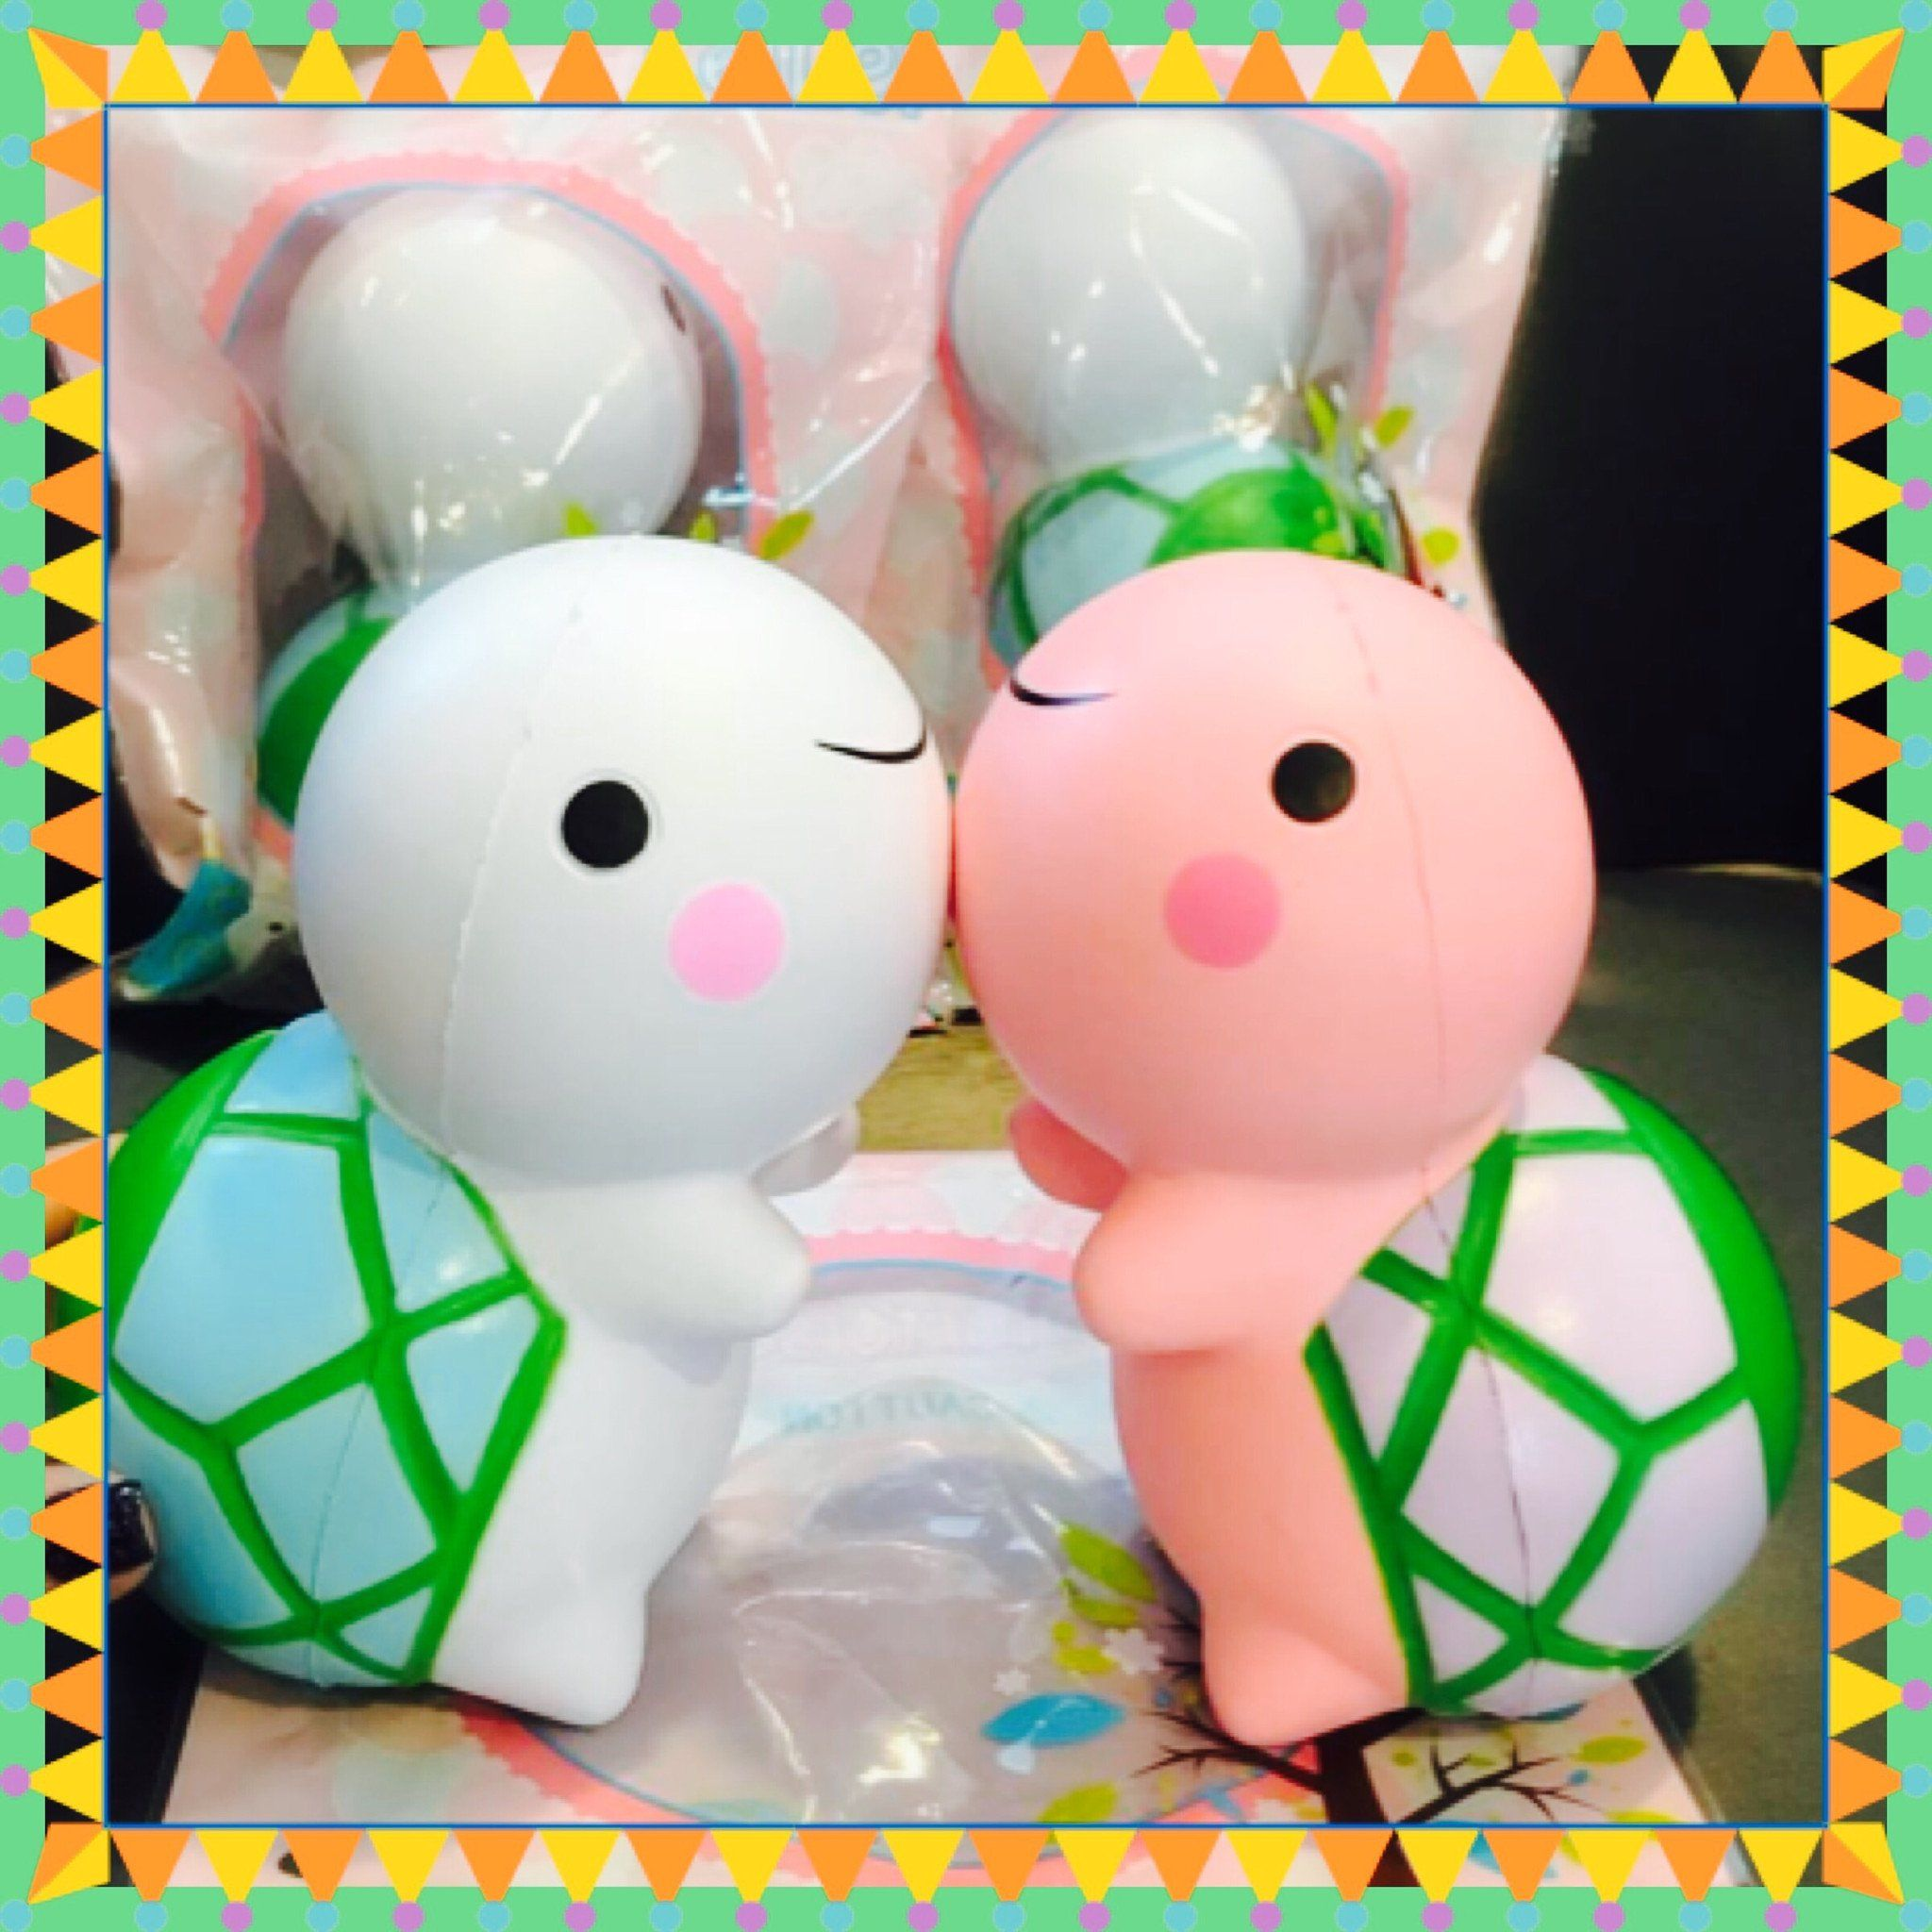 Turtle Squishy Squishies/Squeeze Toys/Slime Pinterest Turtle, Kawaii and Slime